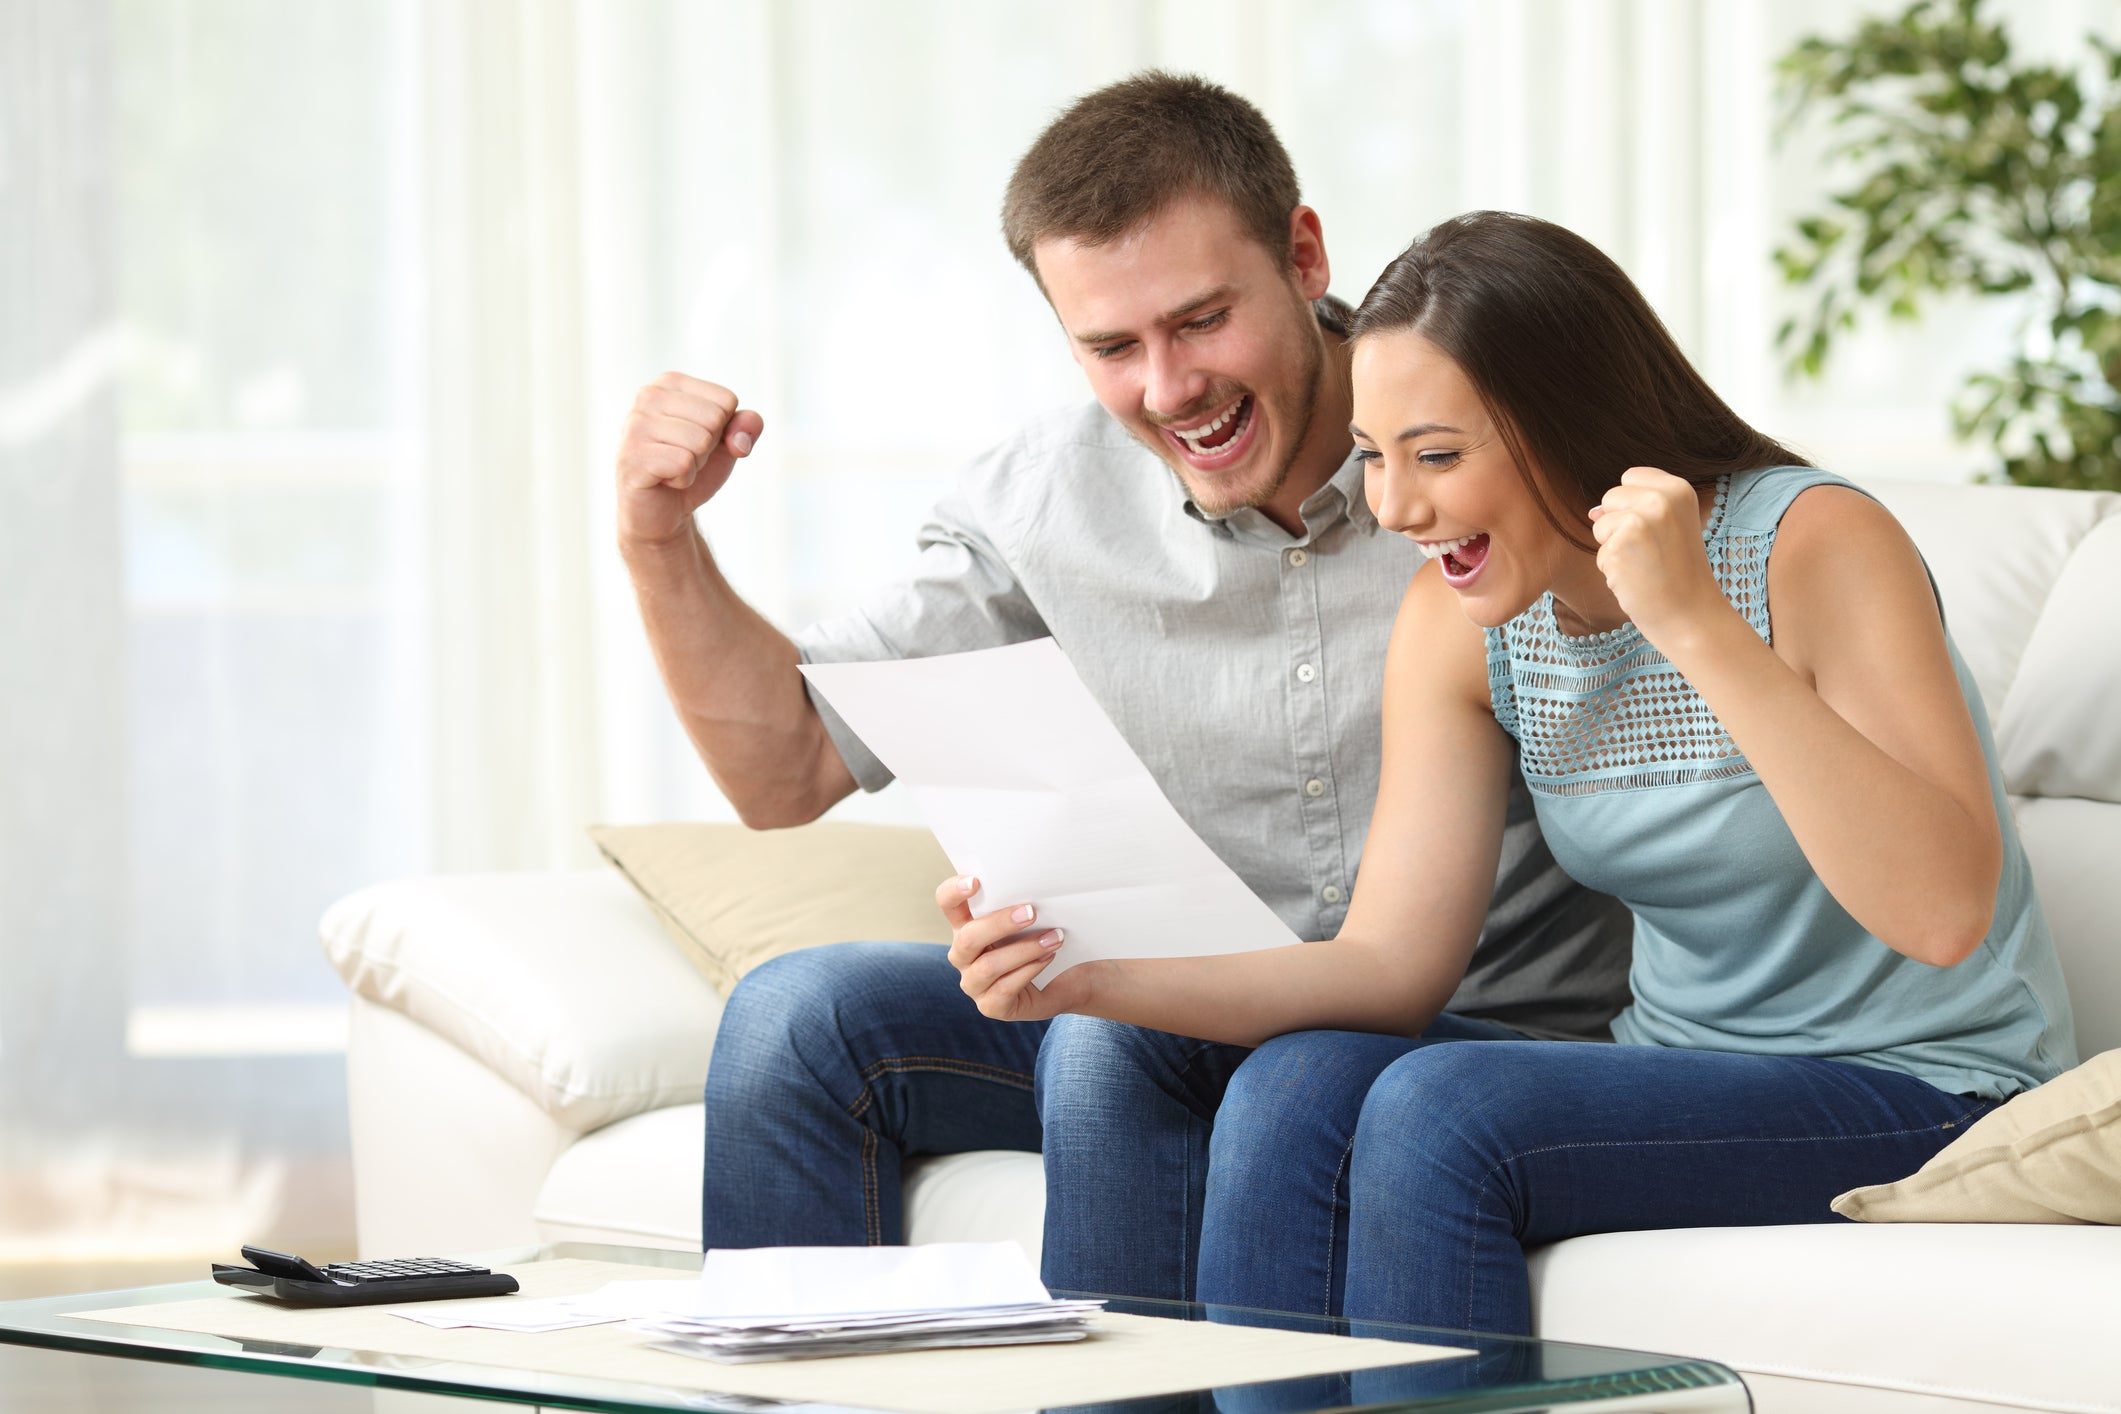 A couple on a sofa, pumping their fists in celebration.